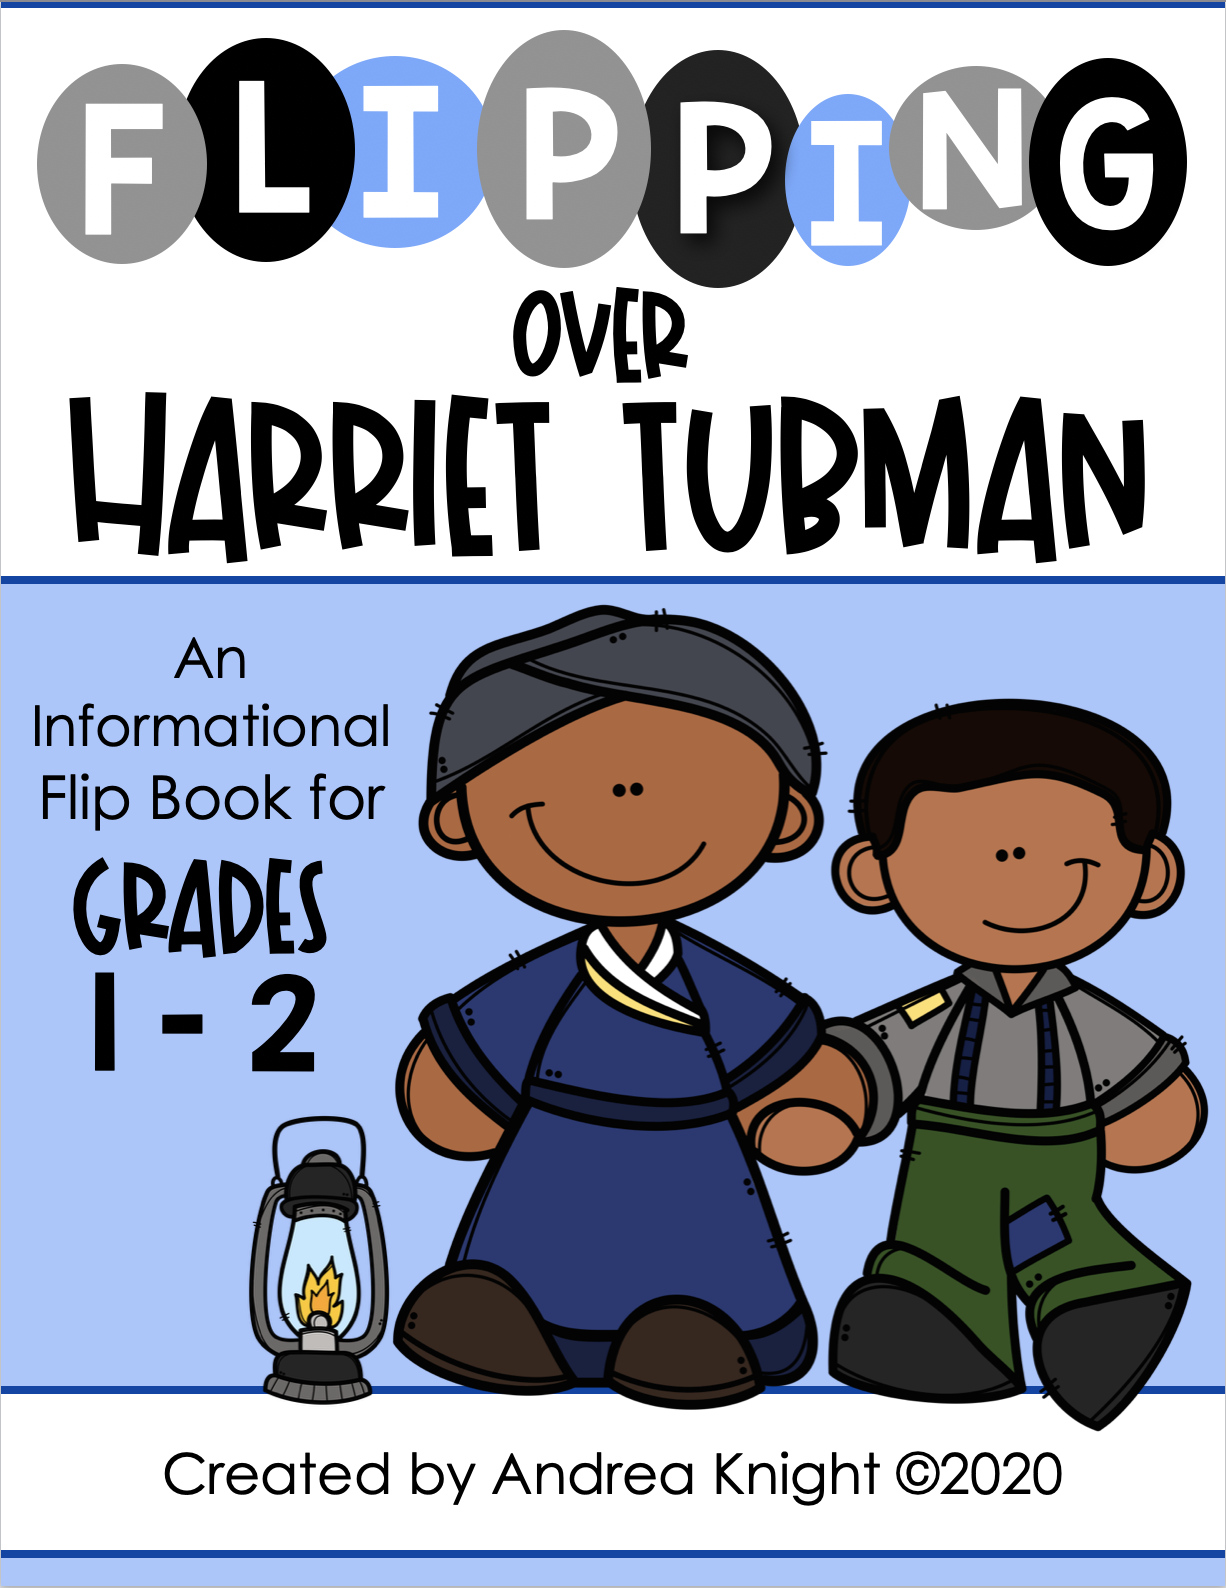 Harriet Tubman A Biography Flip Book Project For Grades 1